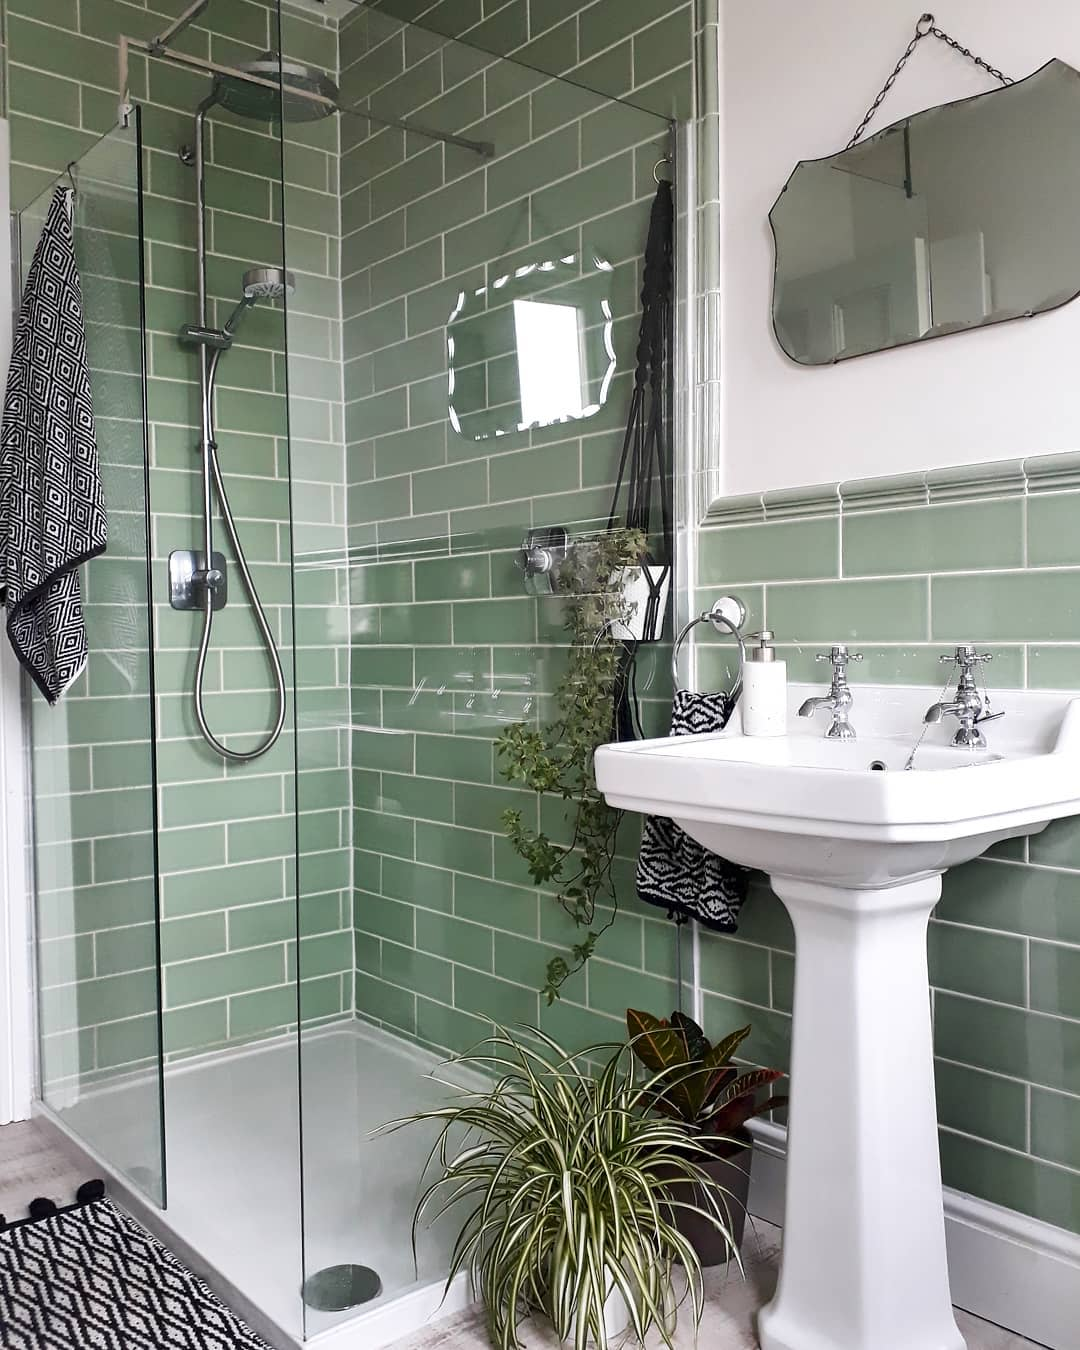 Small Walk In Shower Ideas -we_live_at_no.21